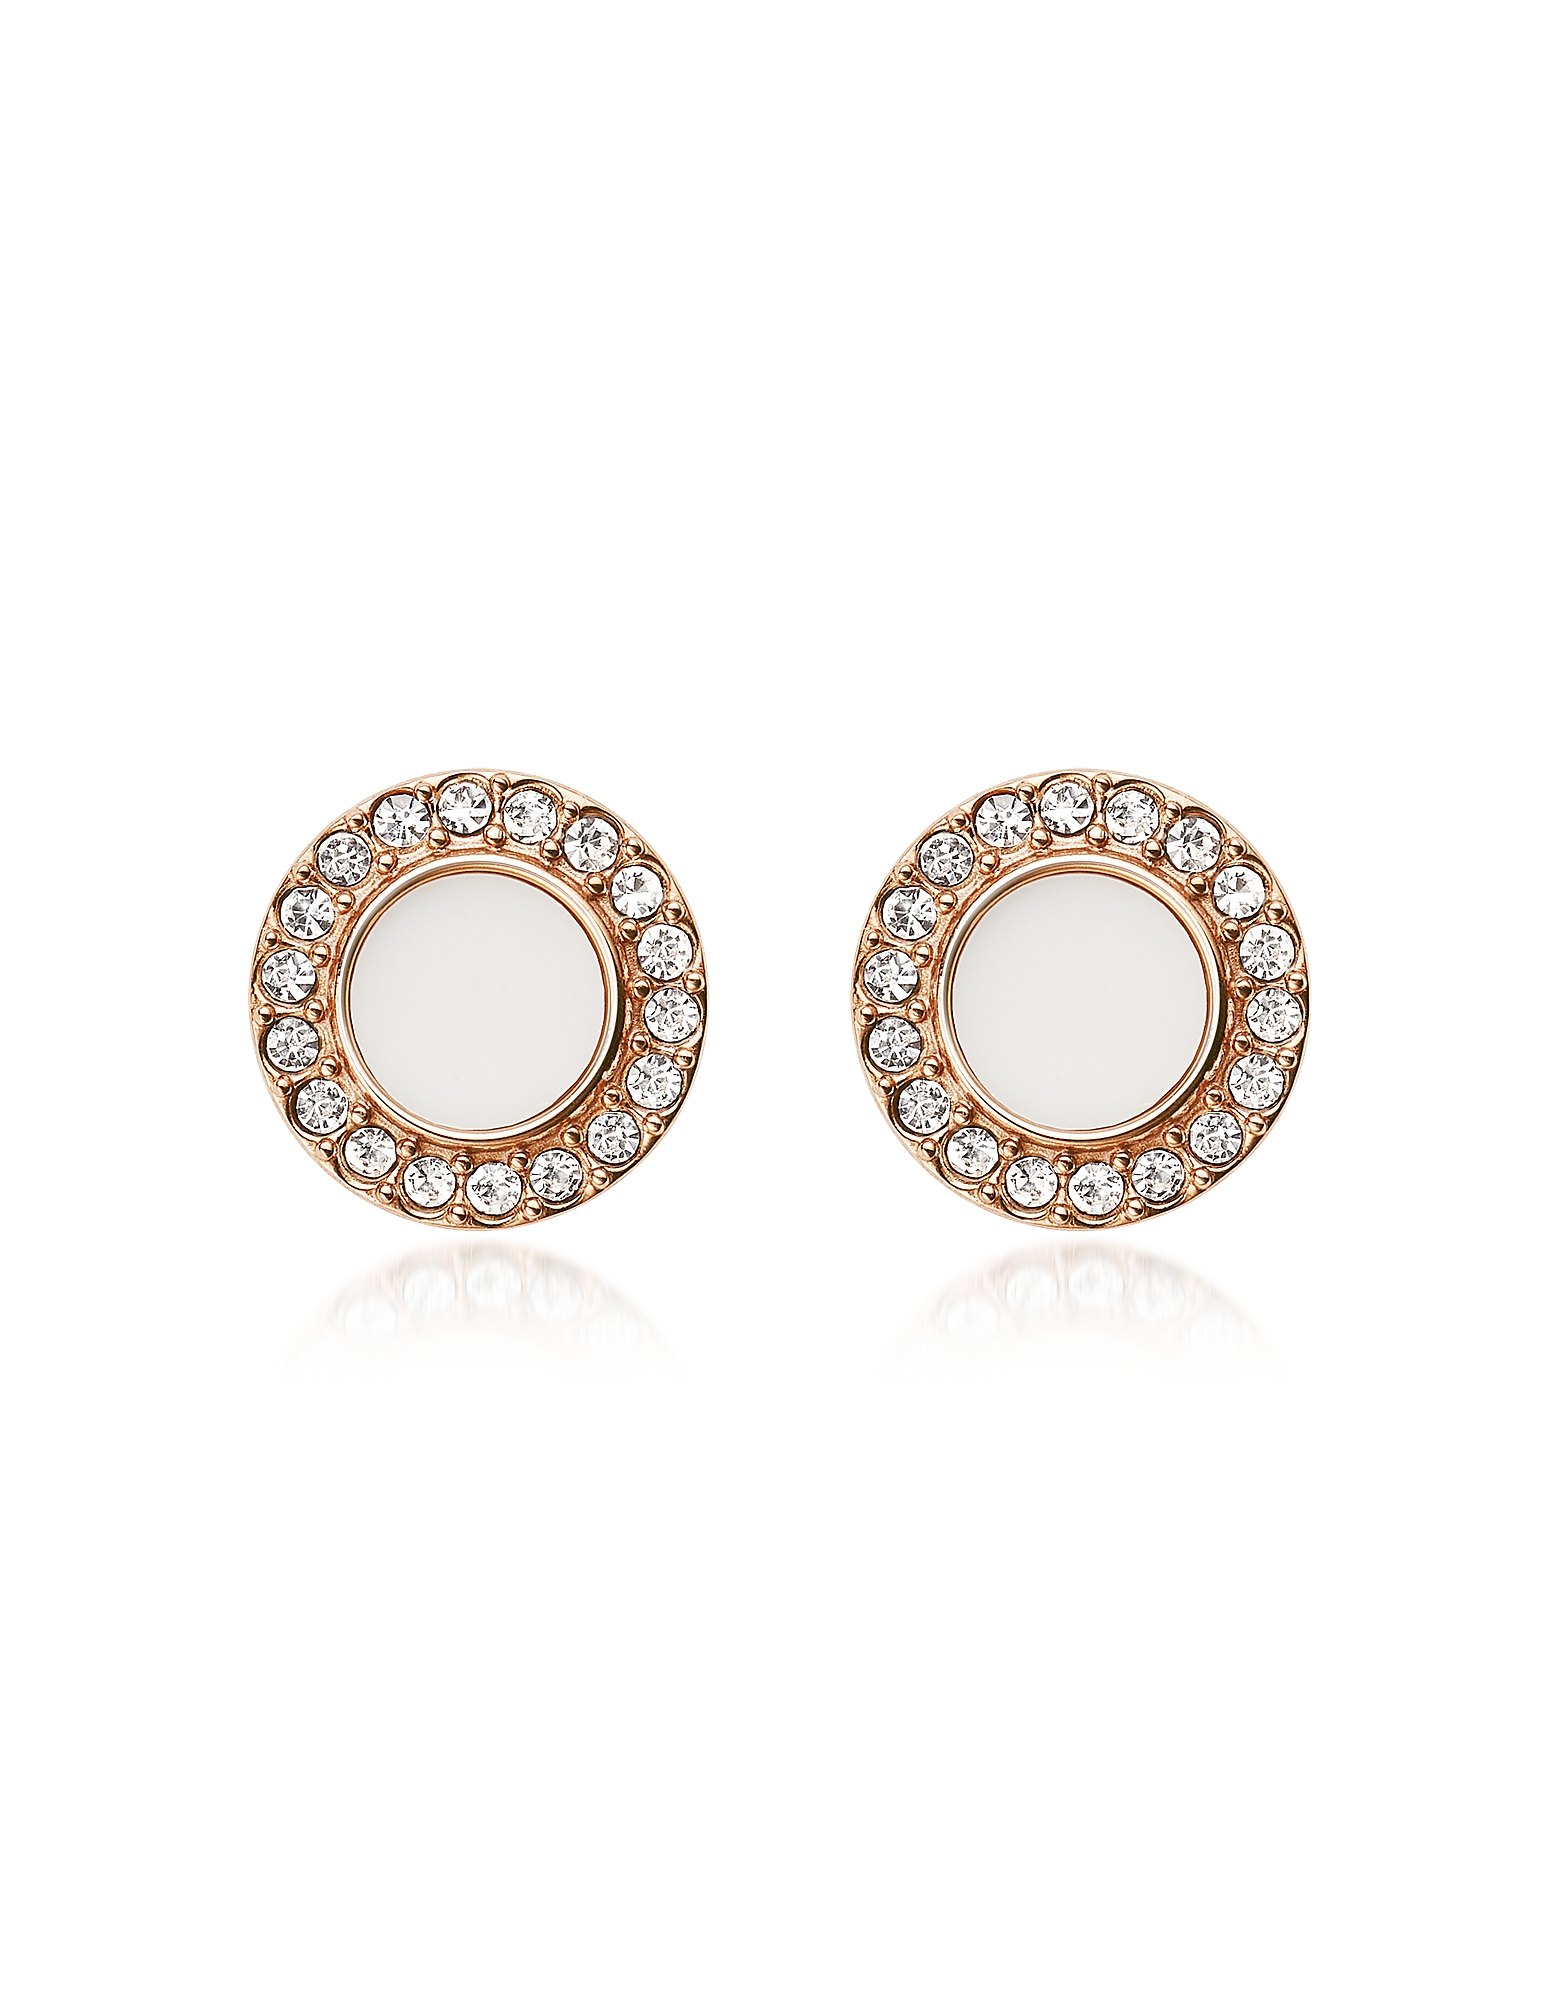 Stone Glitz Stud Earrings, Rose gold